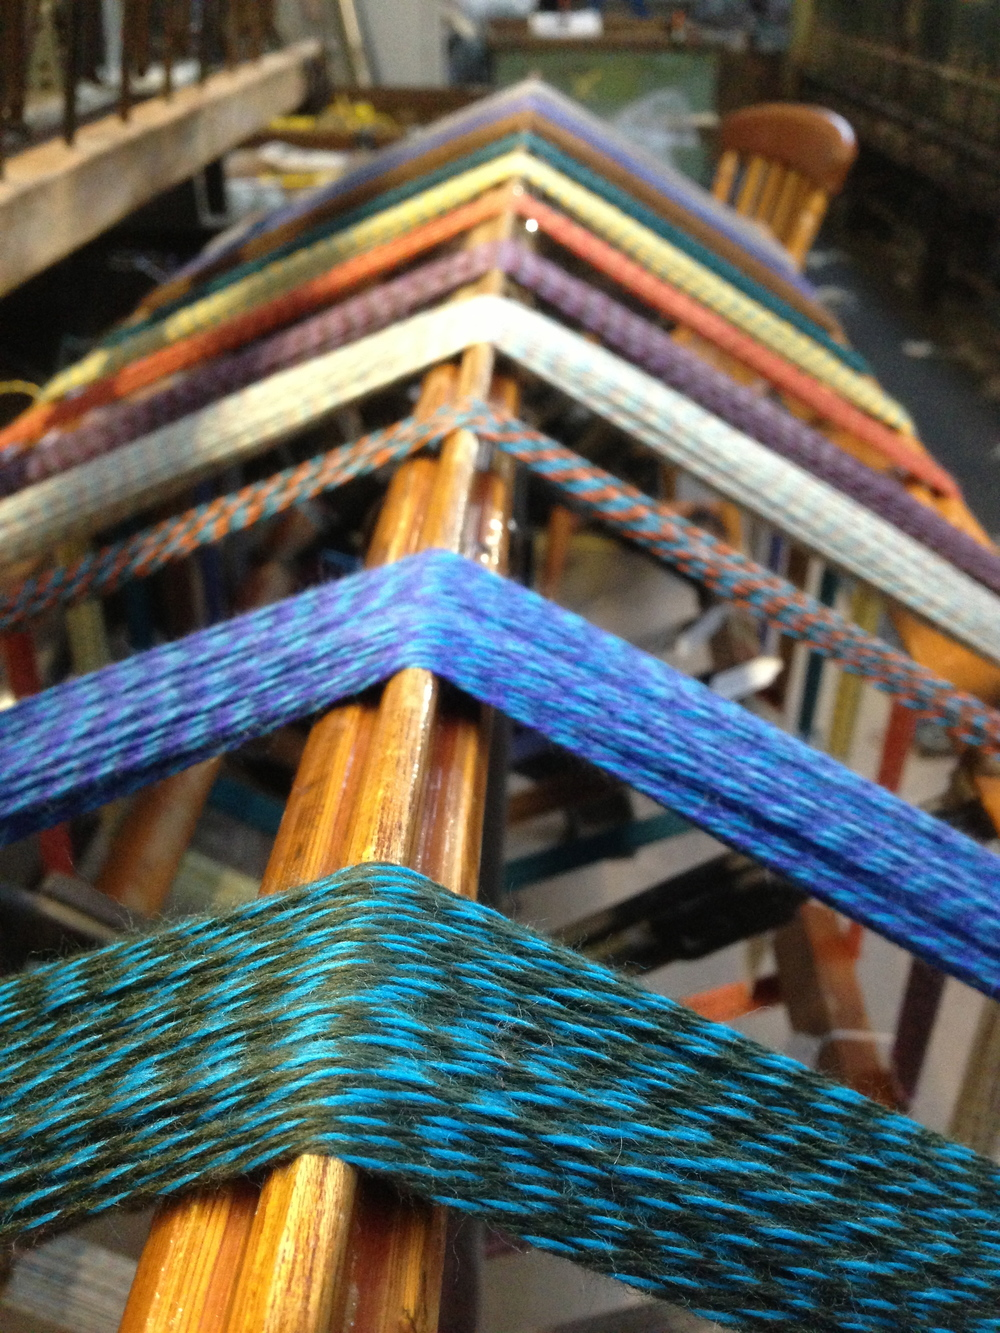 Skeins before twiddling on the skein winder